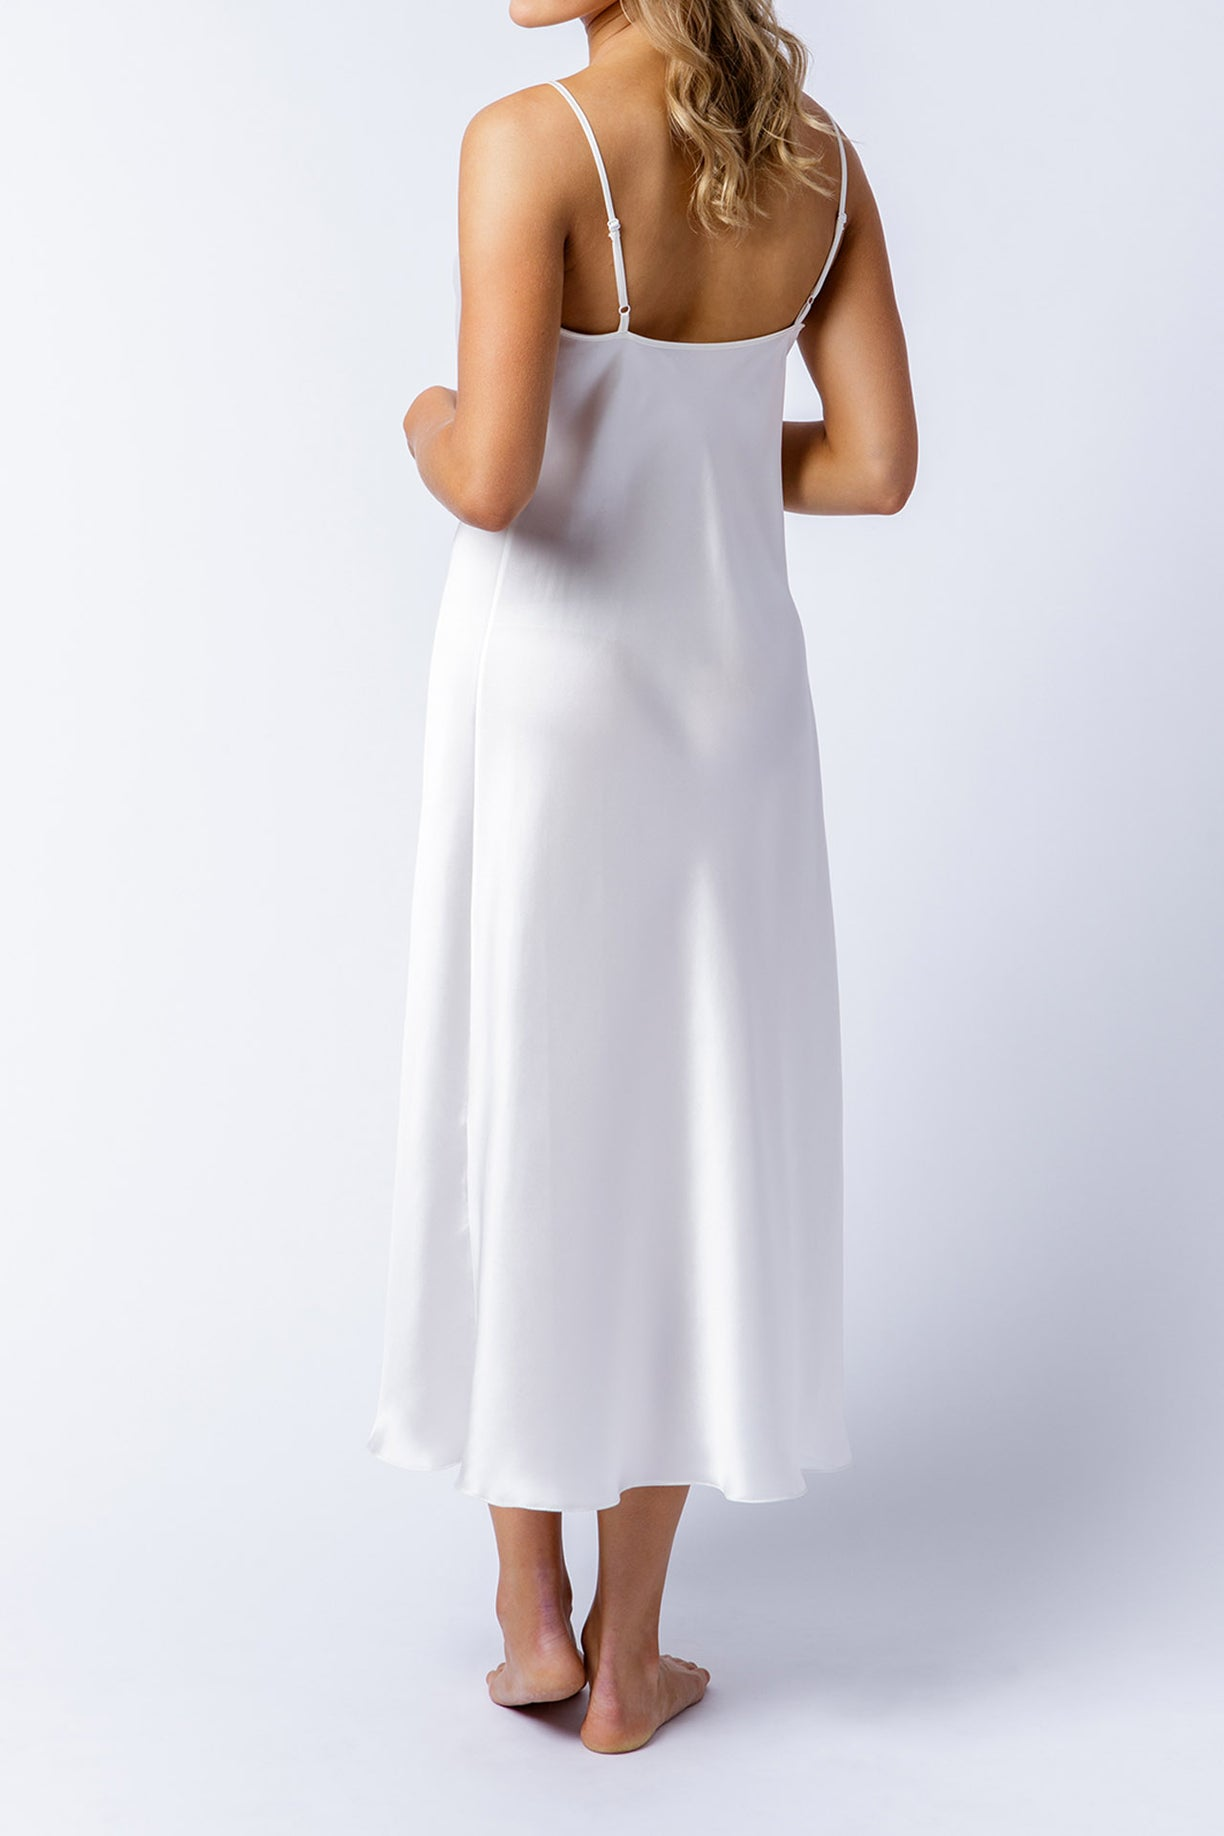 Rosetta slip dress in alabaster, back